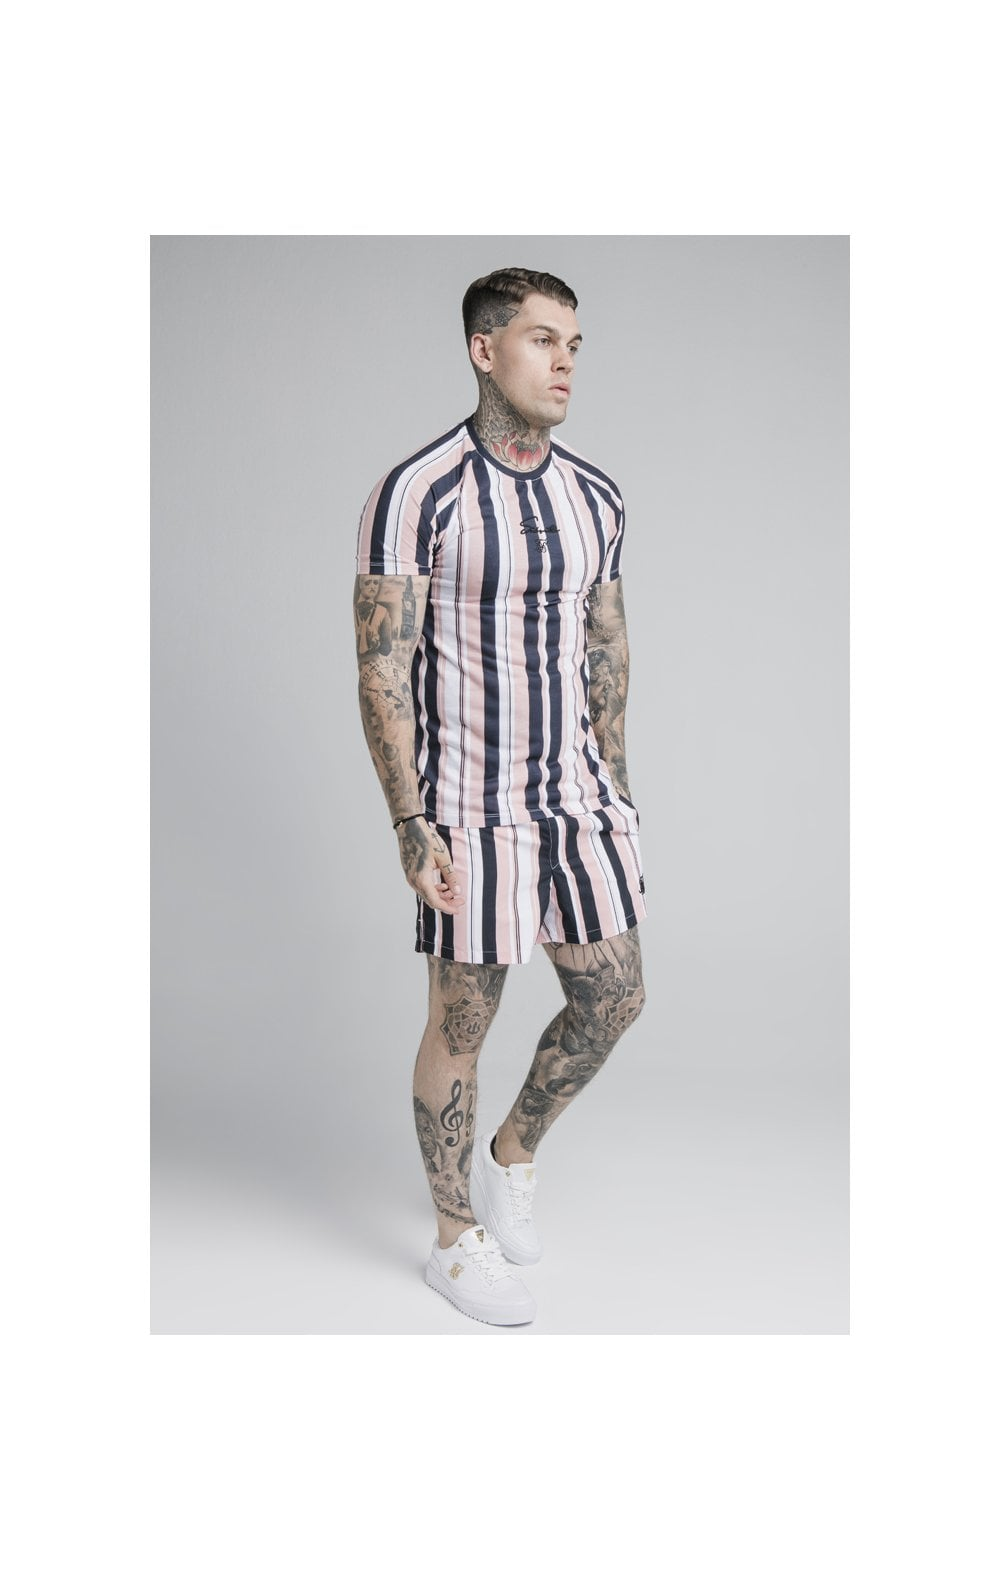 SikSilk Raglan Tech Tee - Navy, Pink & White (2)